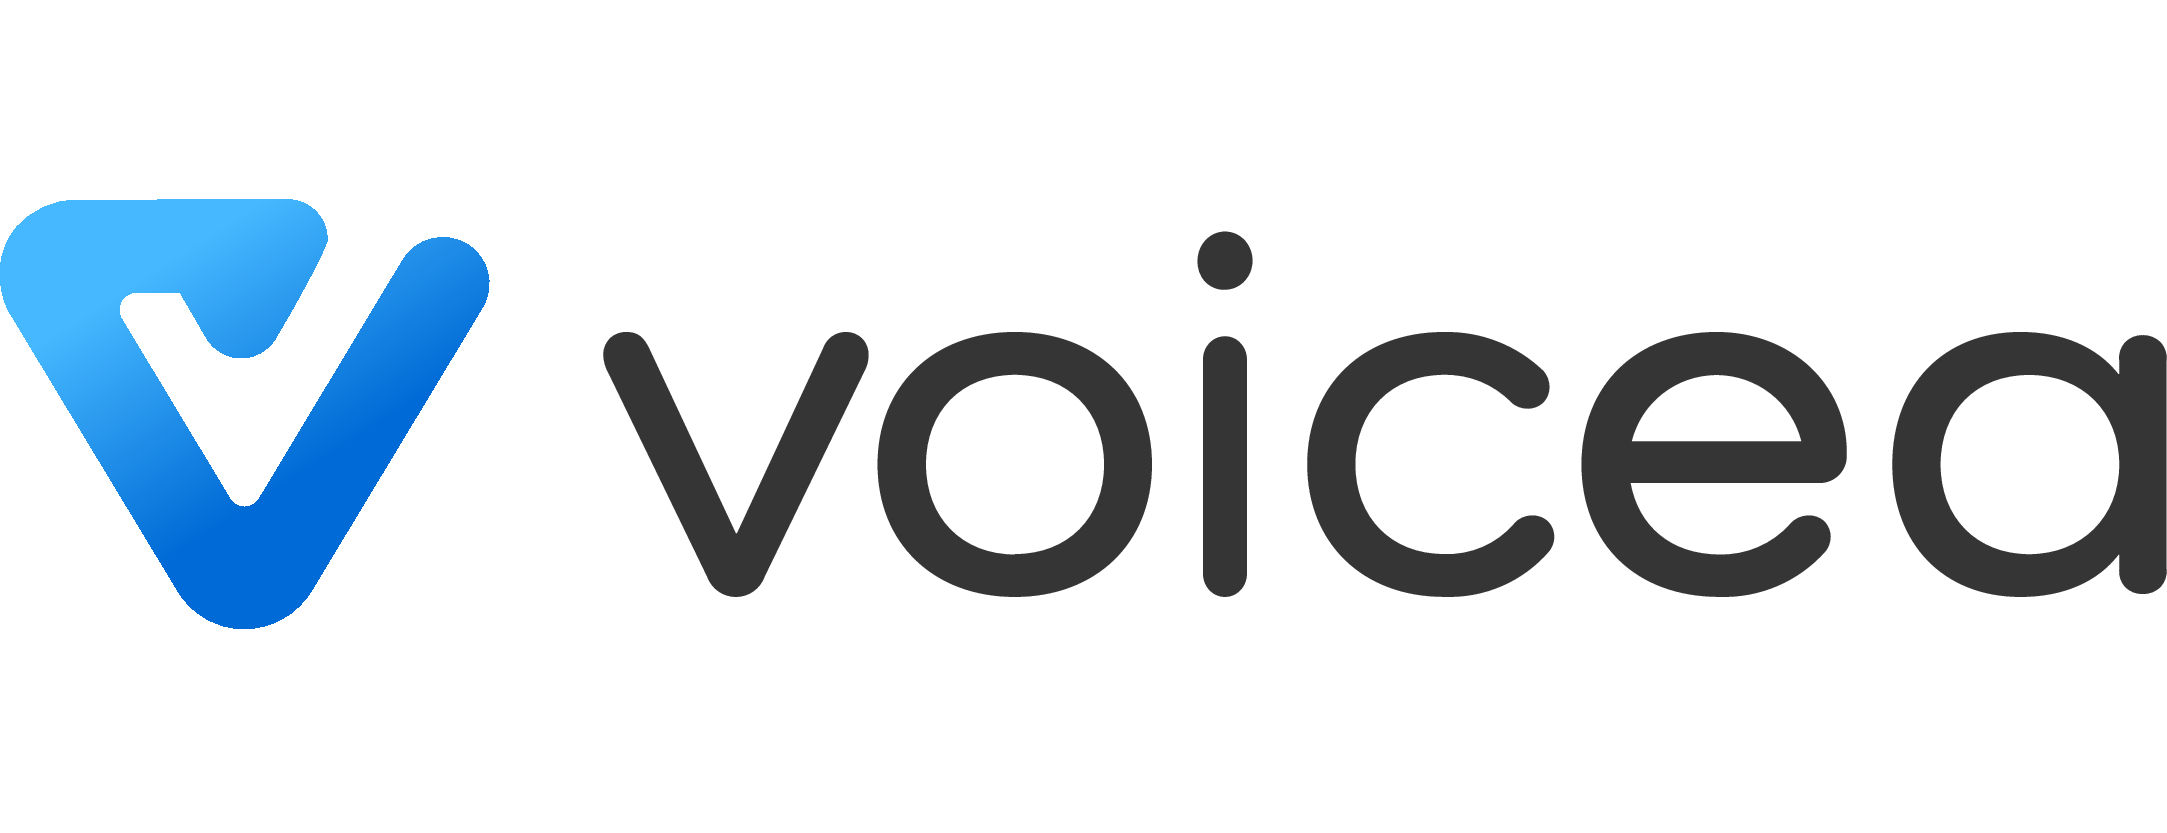 Voicea-logo_less_blackBlack.jpg